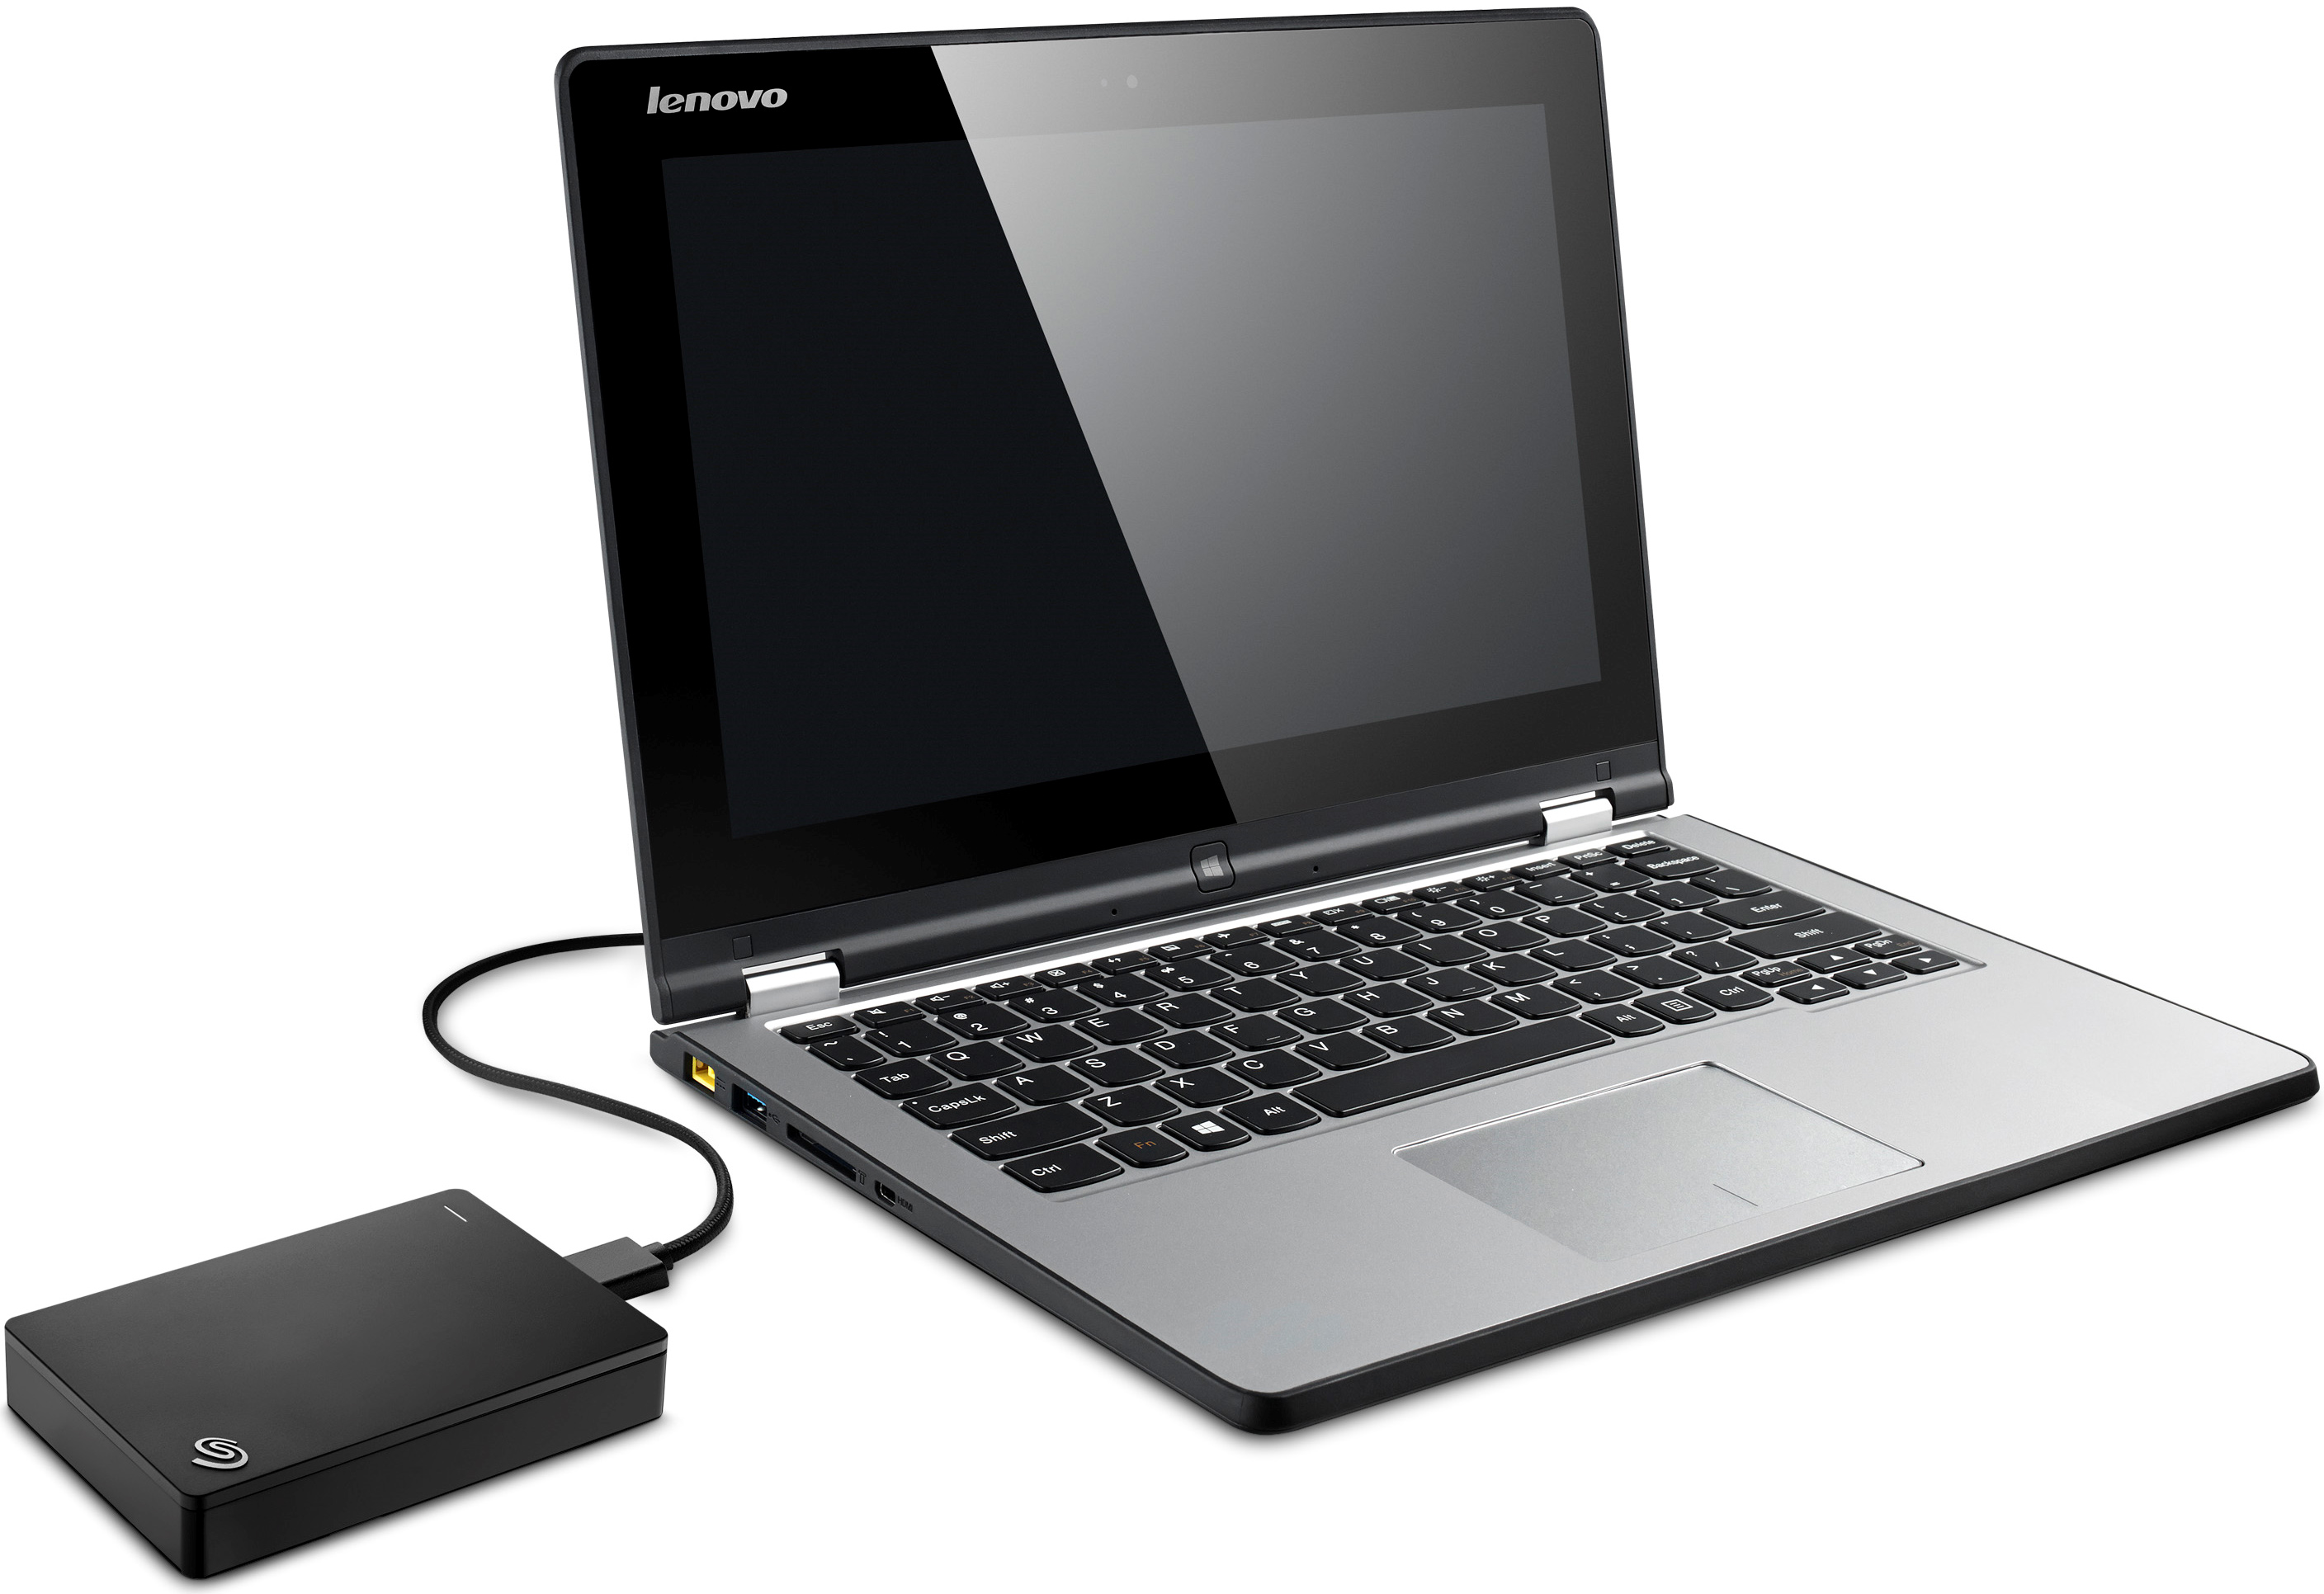 Seagate Introduces Backup Plus Portable 5 TB: The Largest Portable HDD to Date